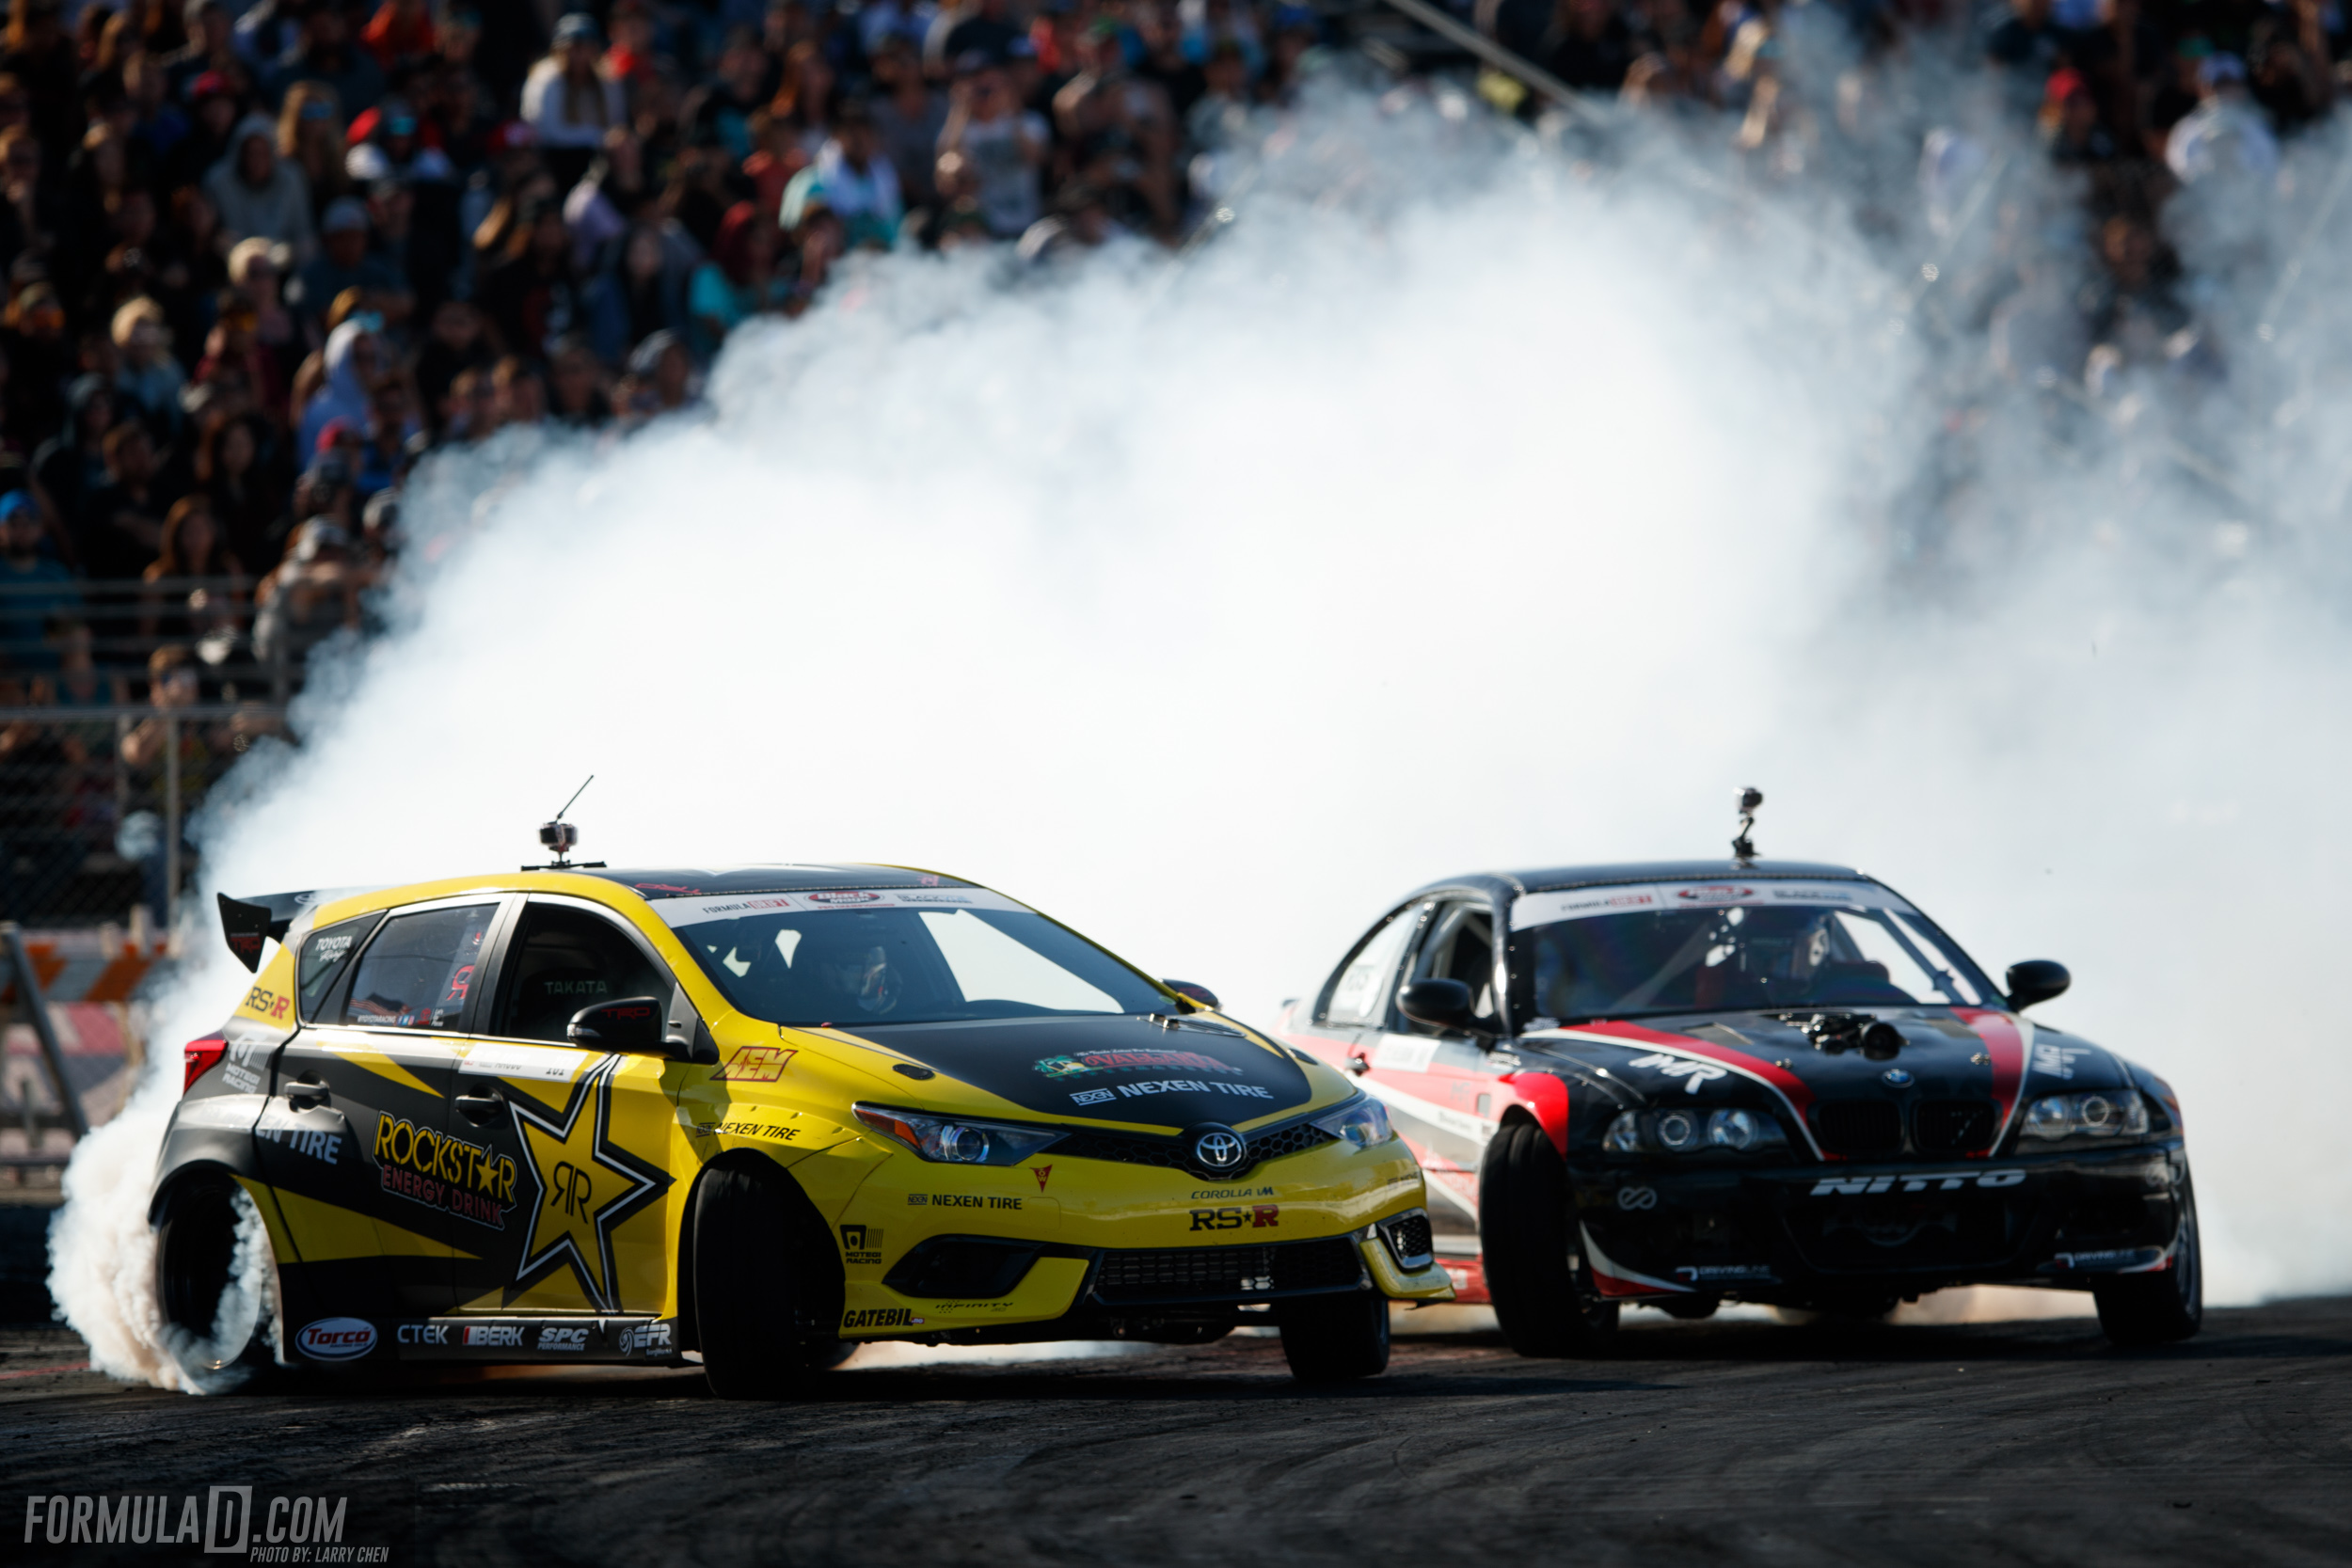 Photo: Larry Chen / formulad.com